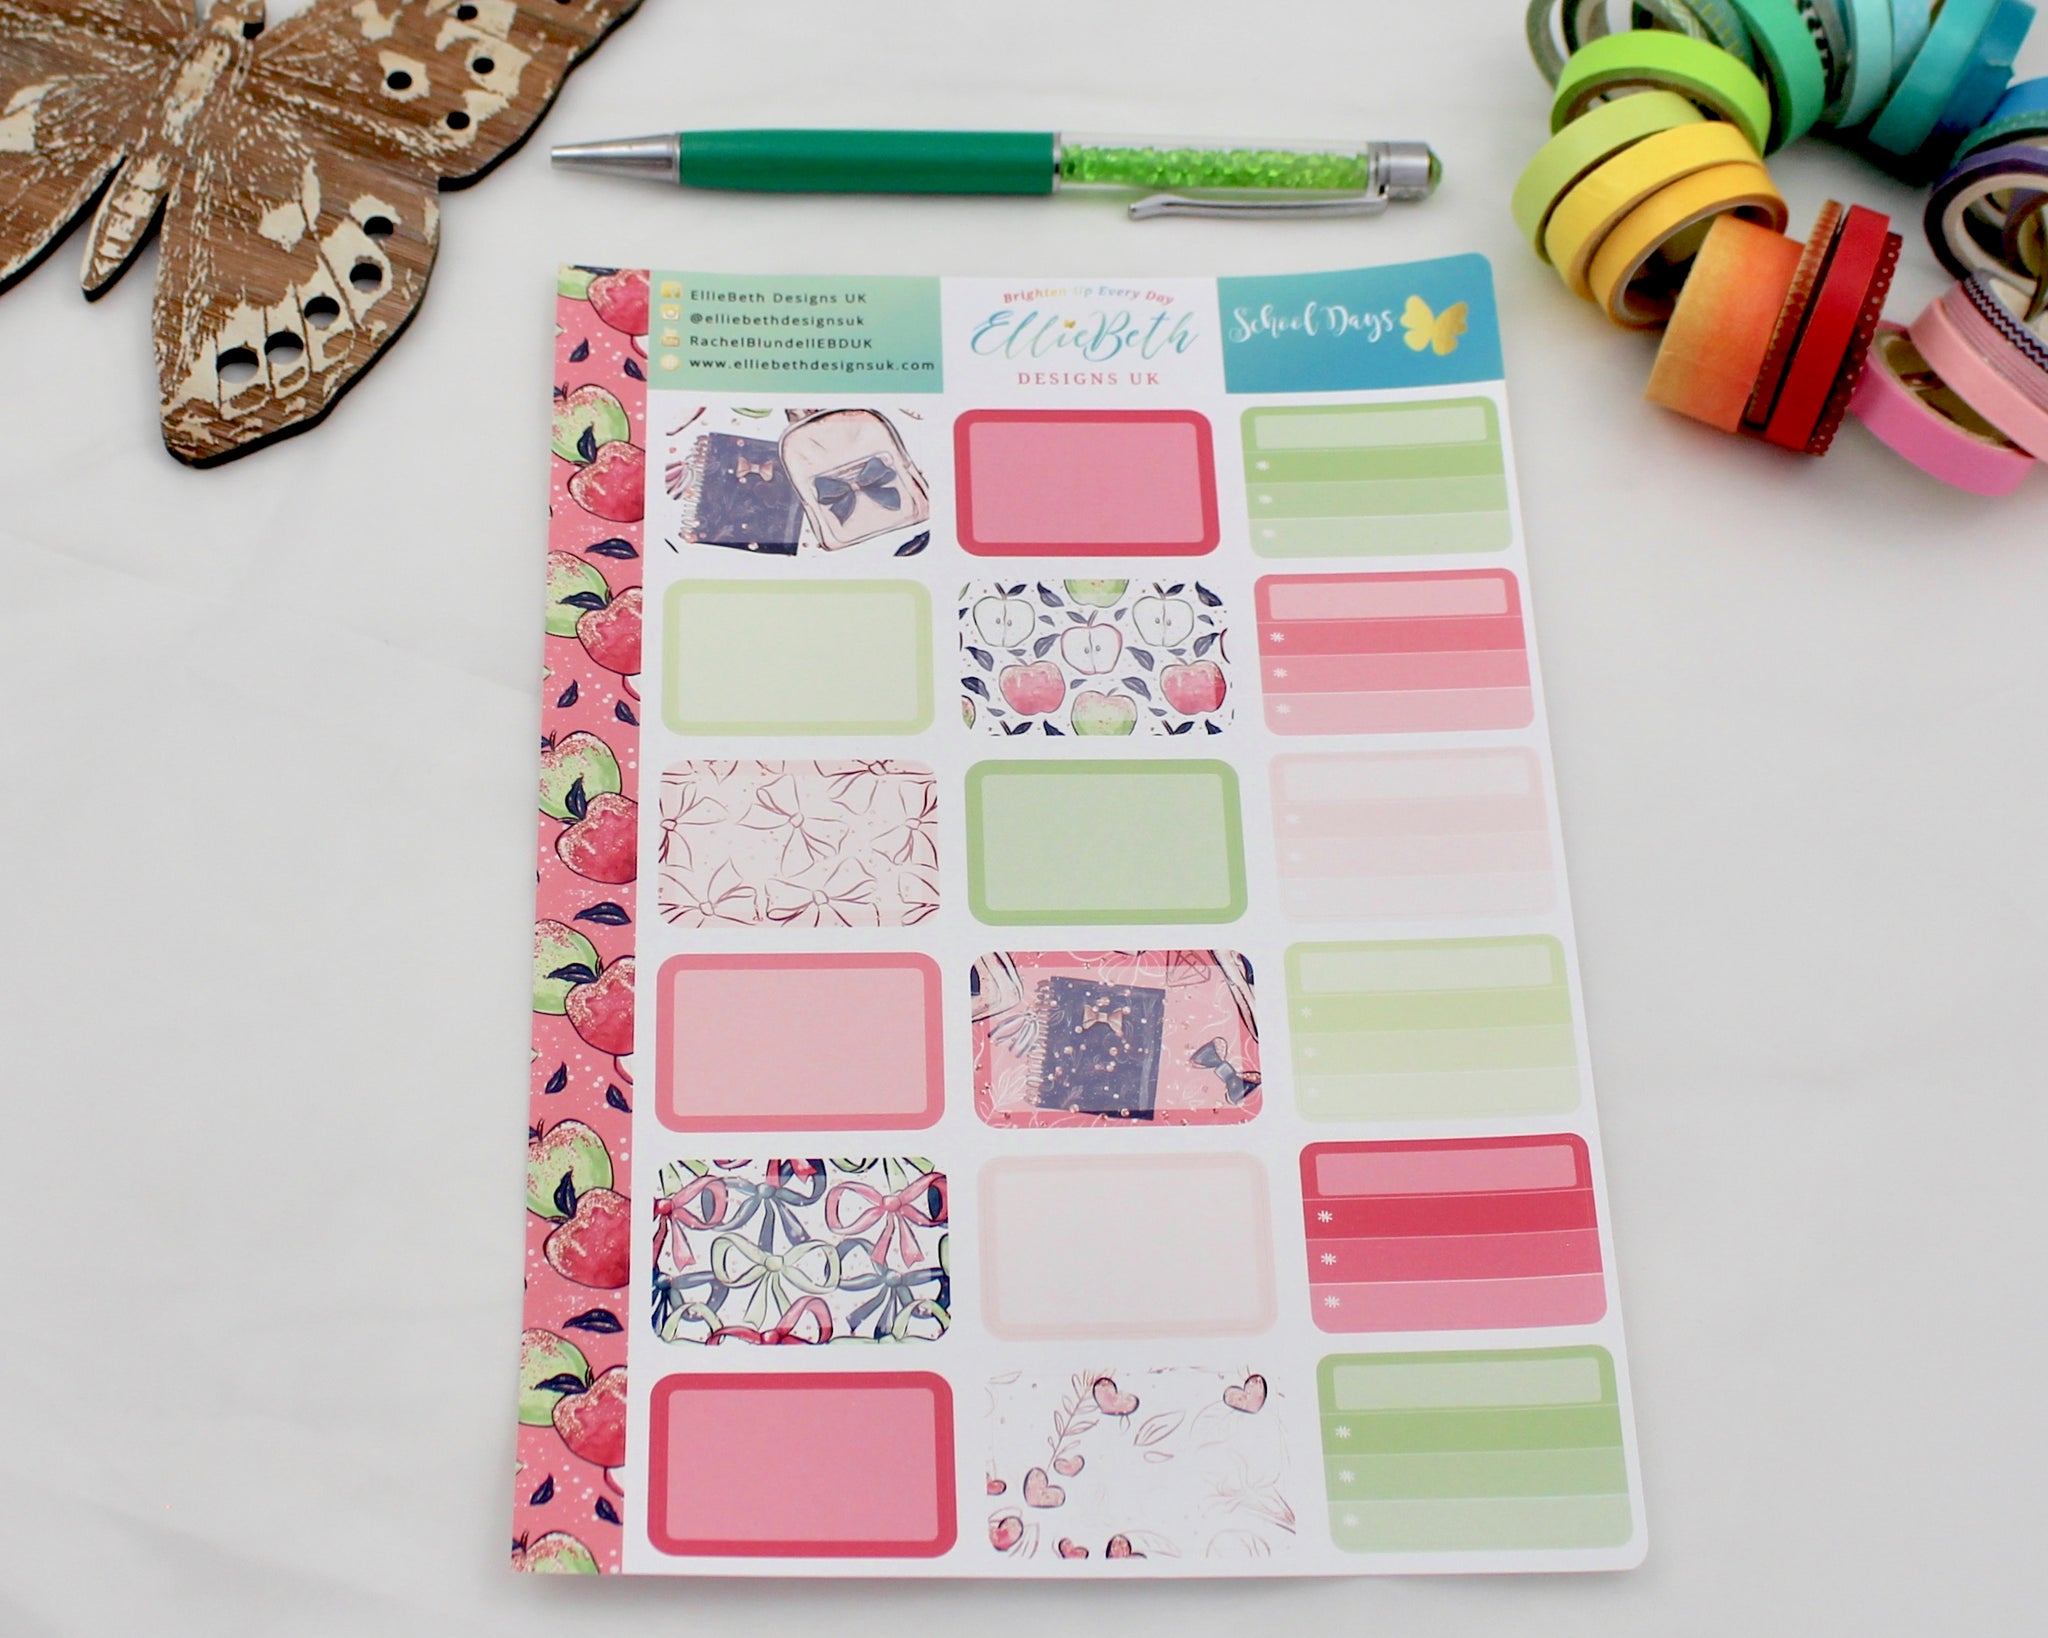 'School Days' - Half Boxes -  A5 binder ready planner stickers